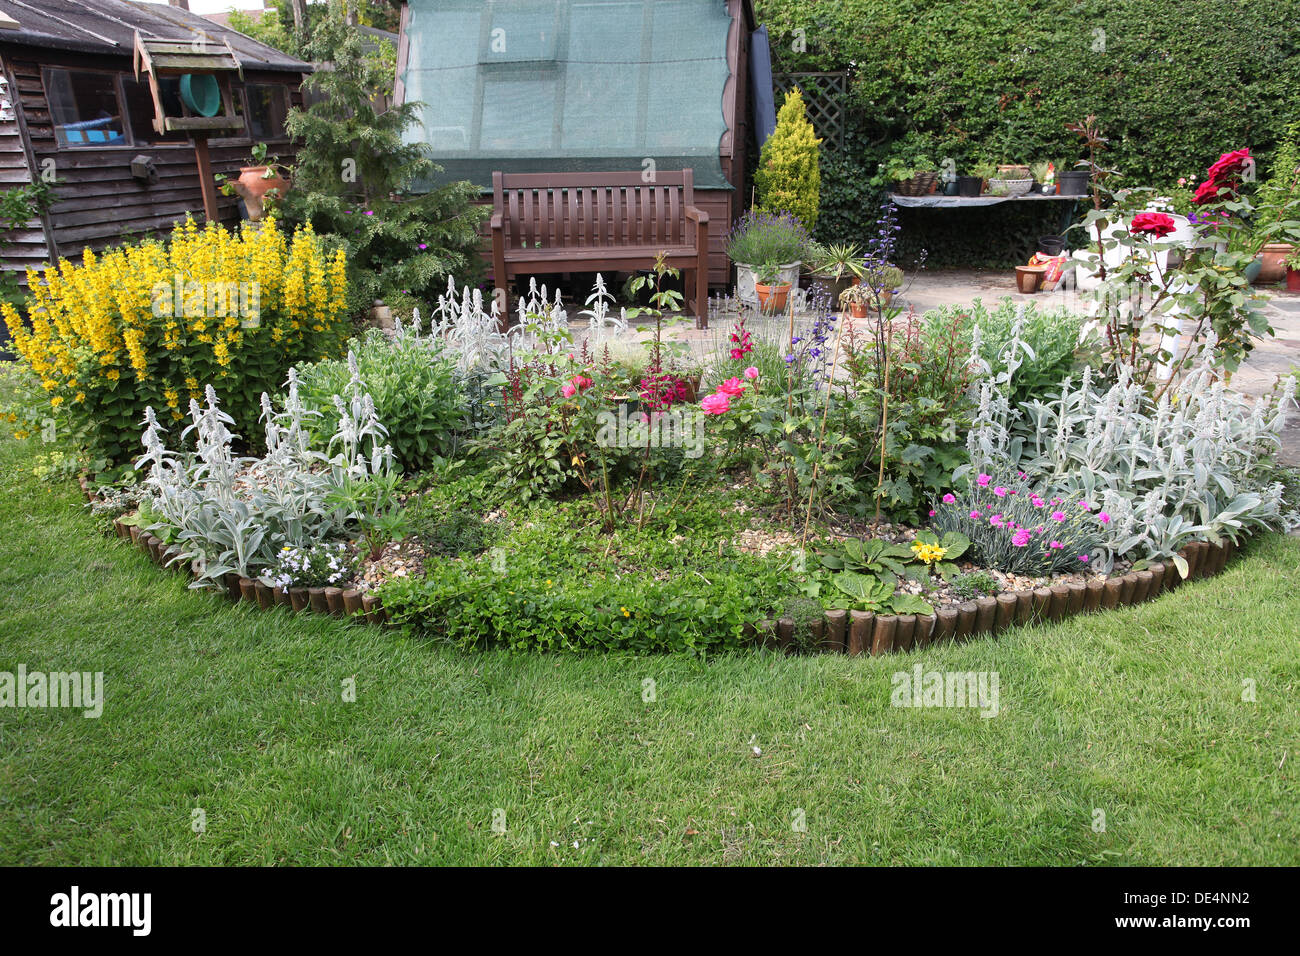 Flower Bed In Half Moon Shape In English Garden Stock